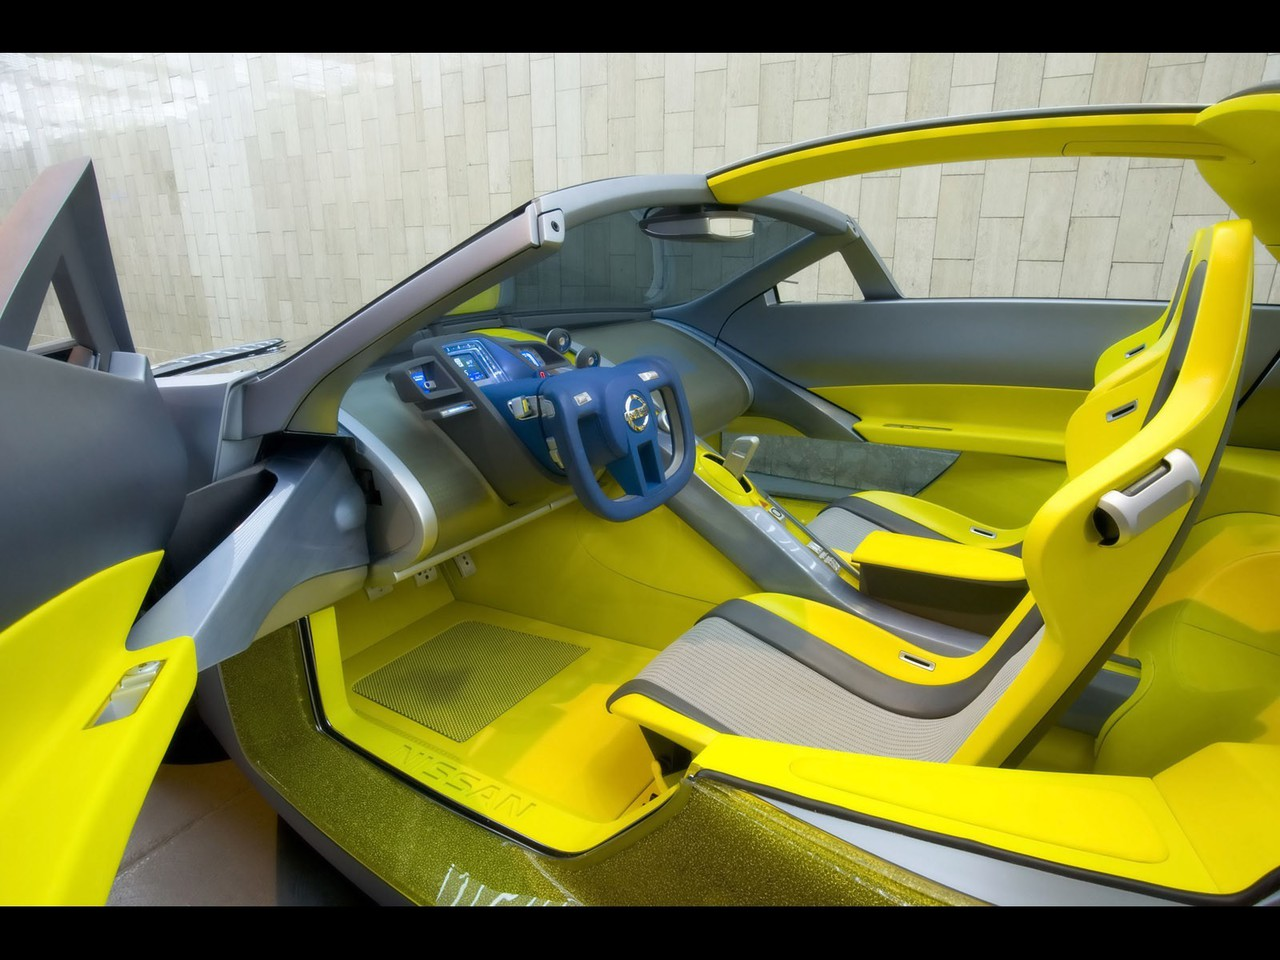 cars interior nissan concept art 2006 wallpaper 7074 pc en. Black Bedroom Furniture Sets. Home Design Ideas